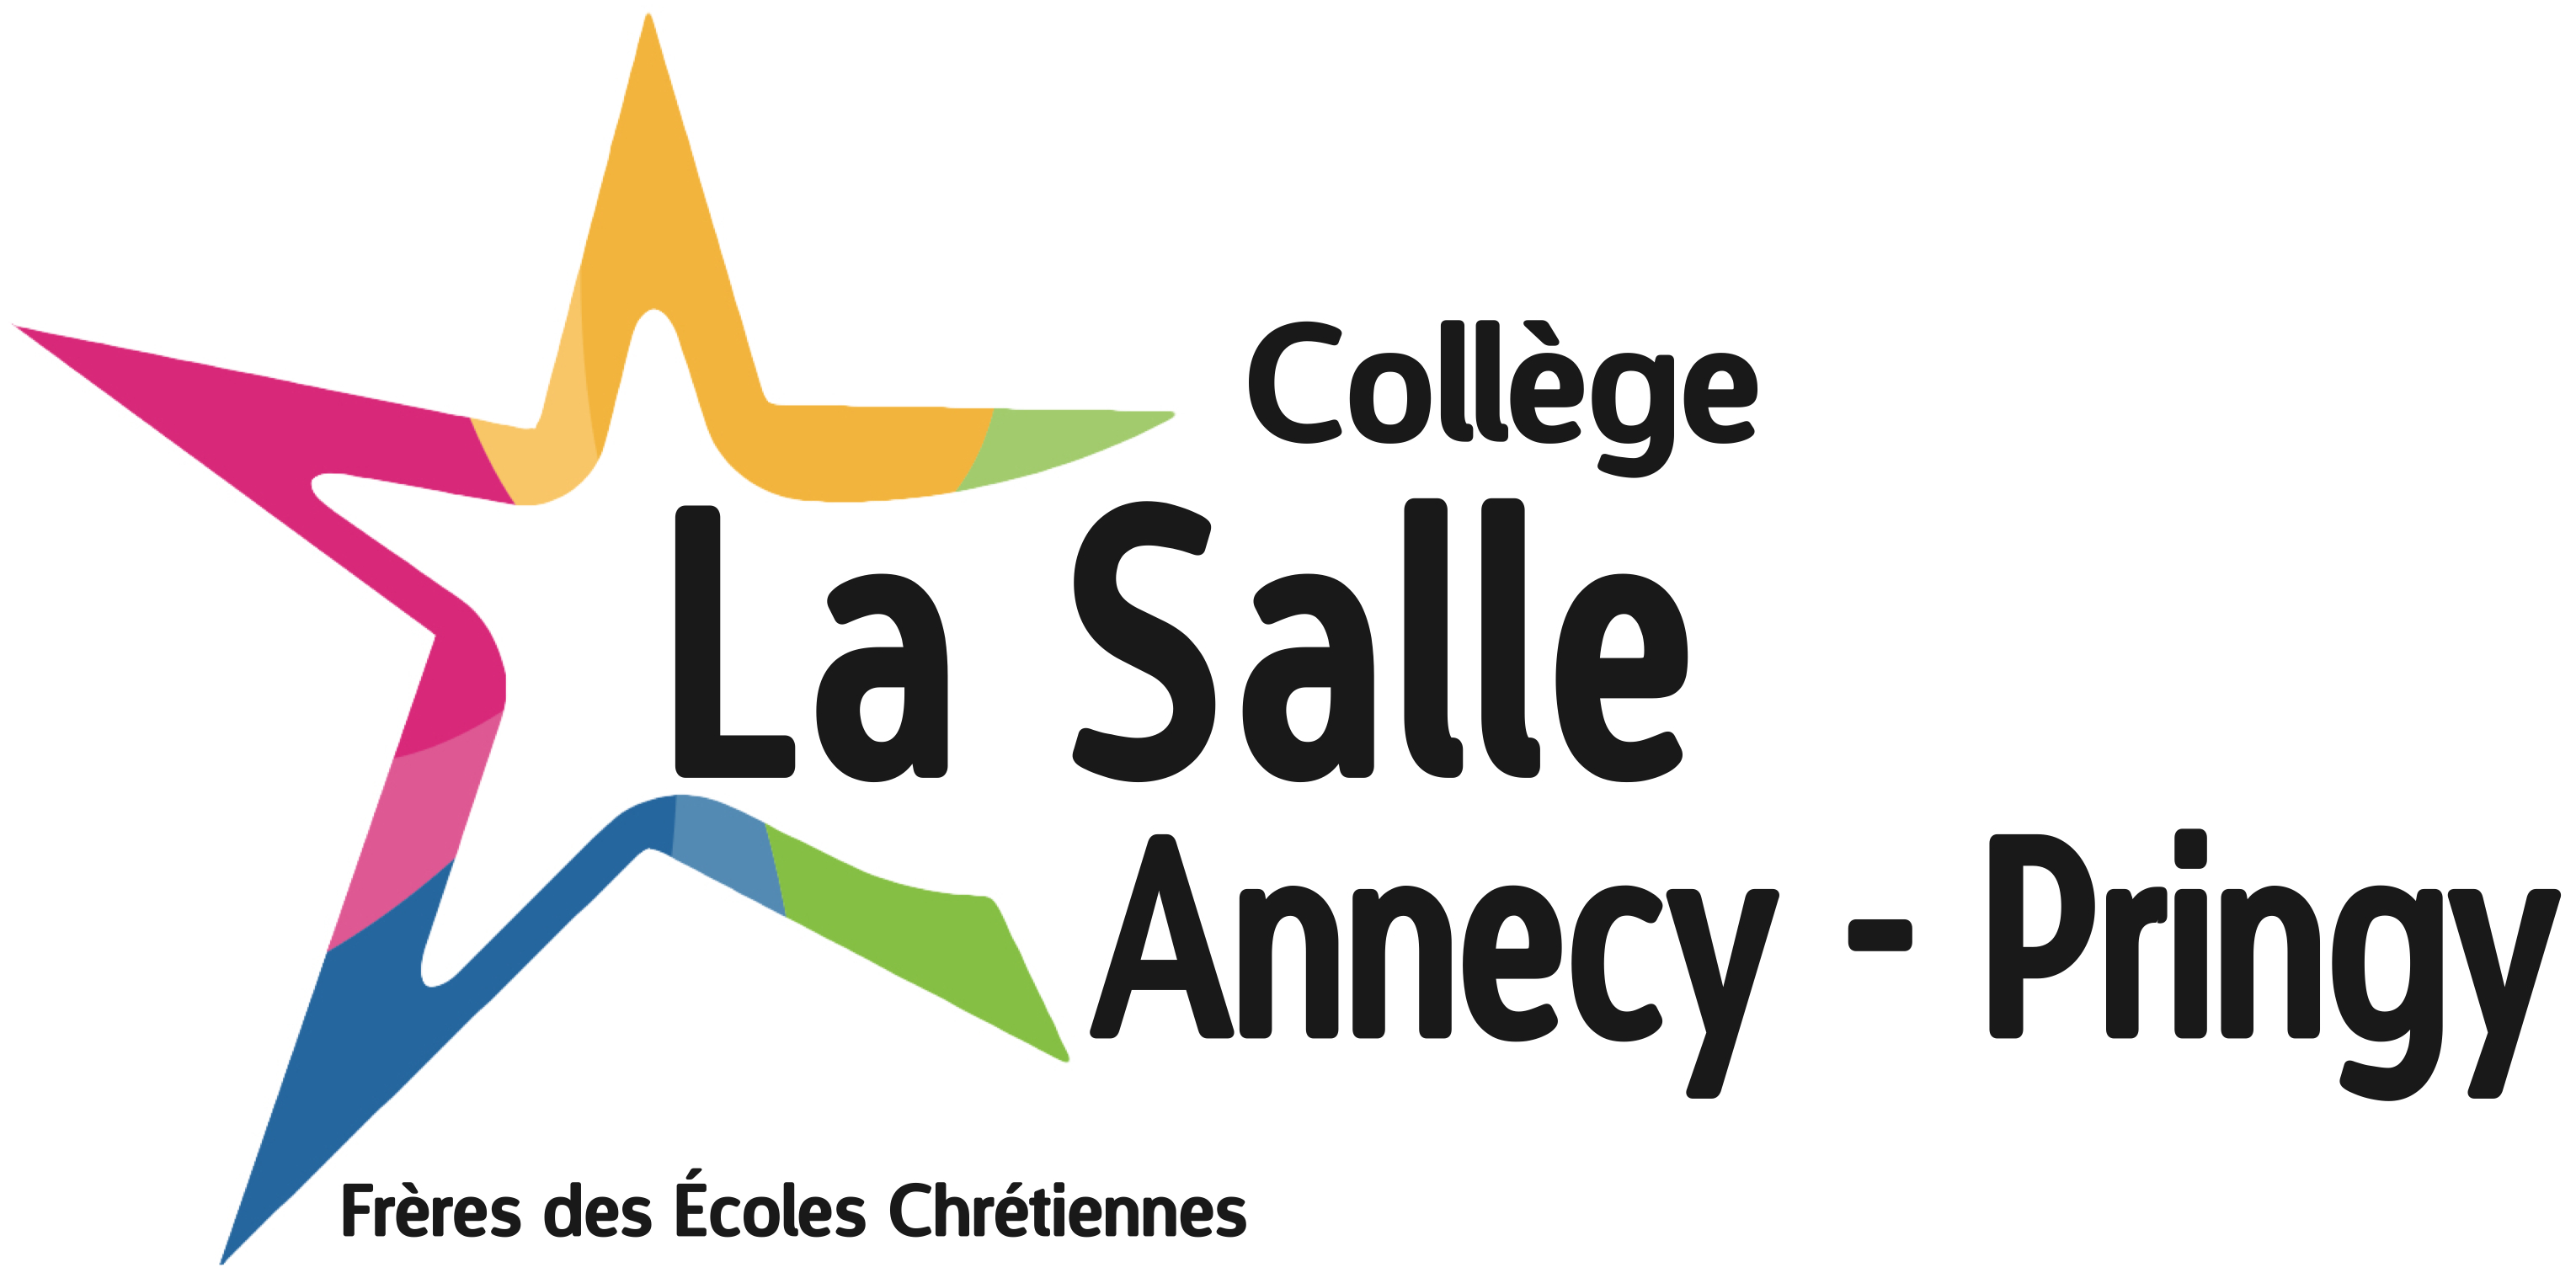 COLLEGE ANNECY PRINGY 2017